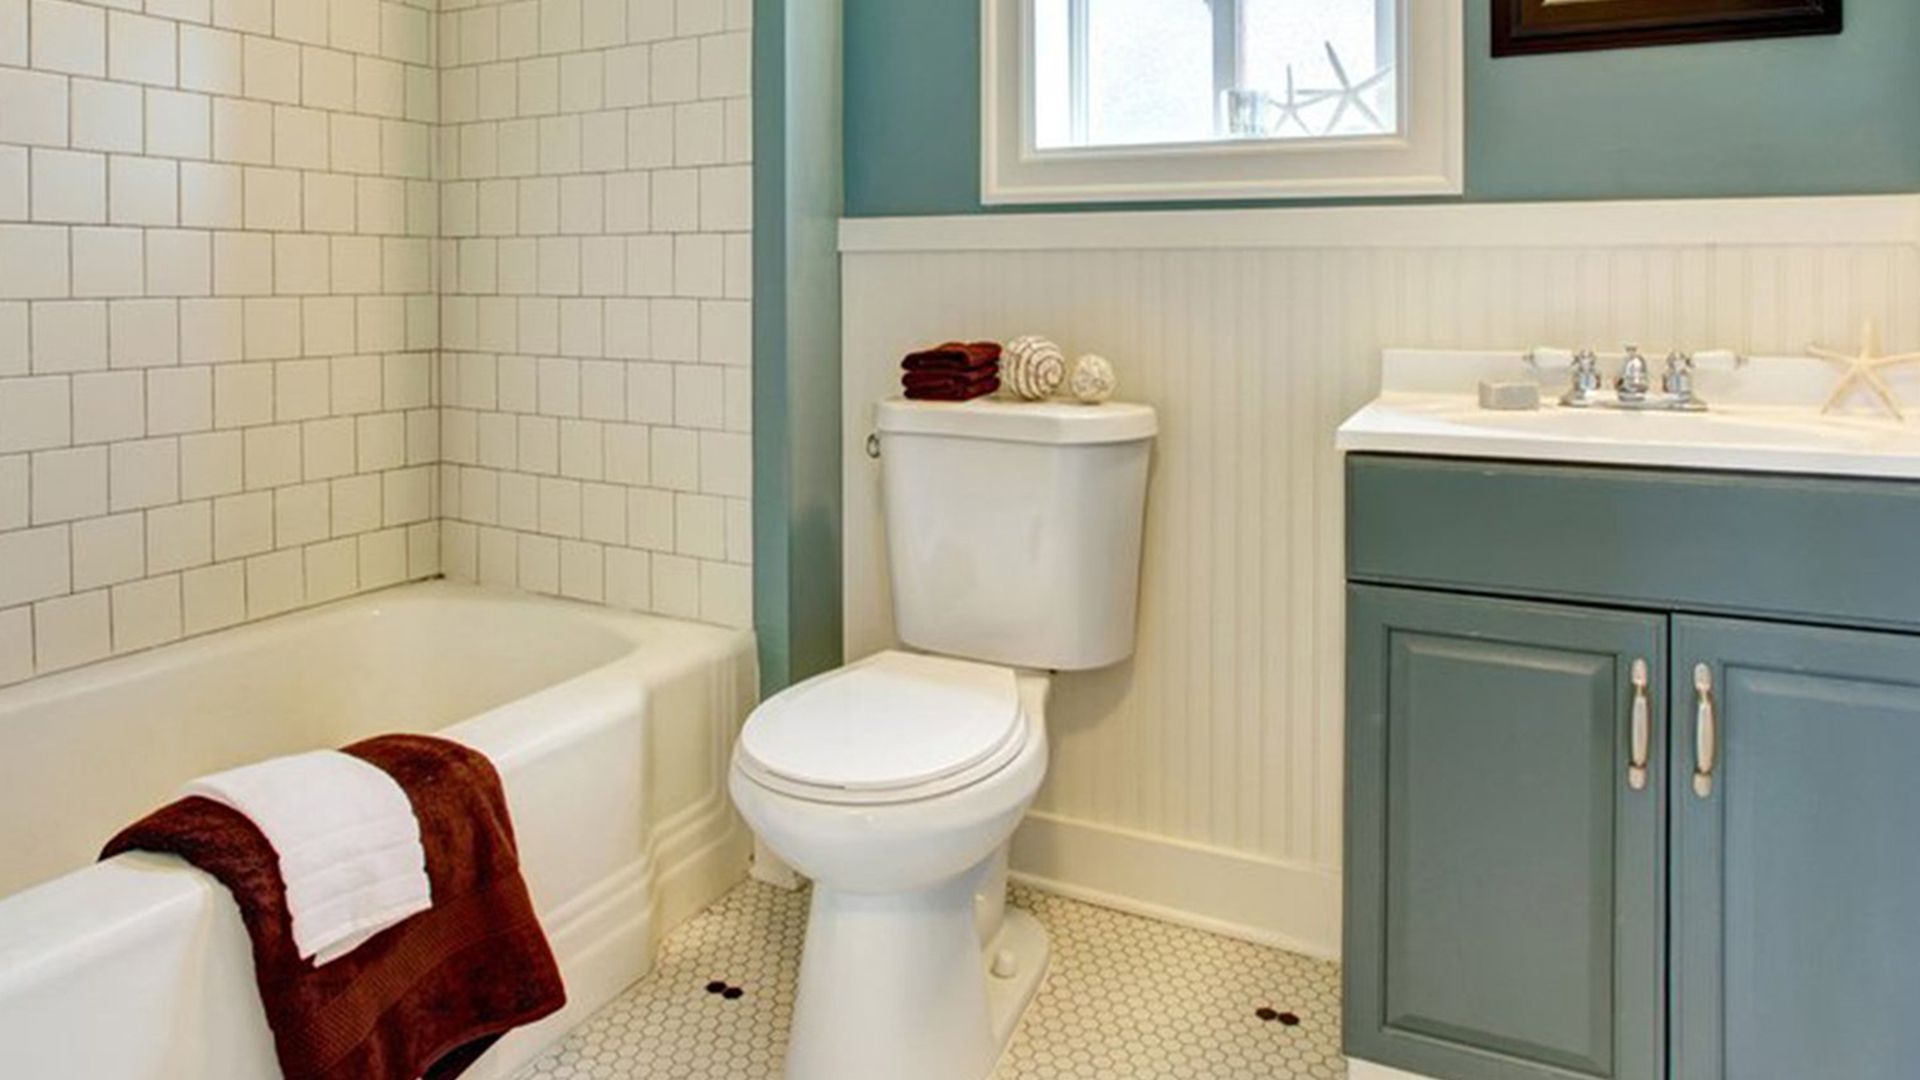 things you should never flush down a toilet Toilet